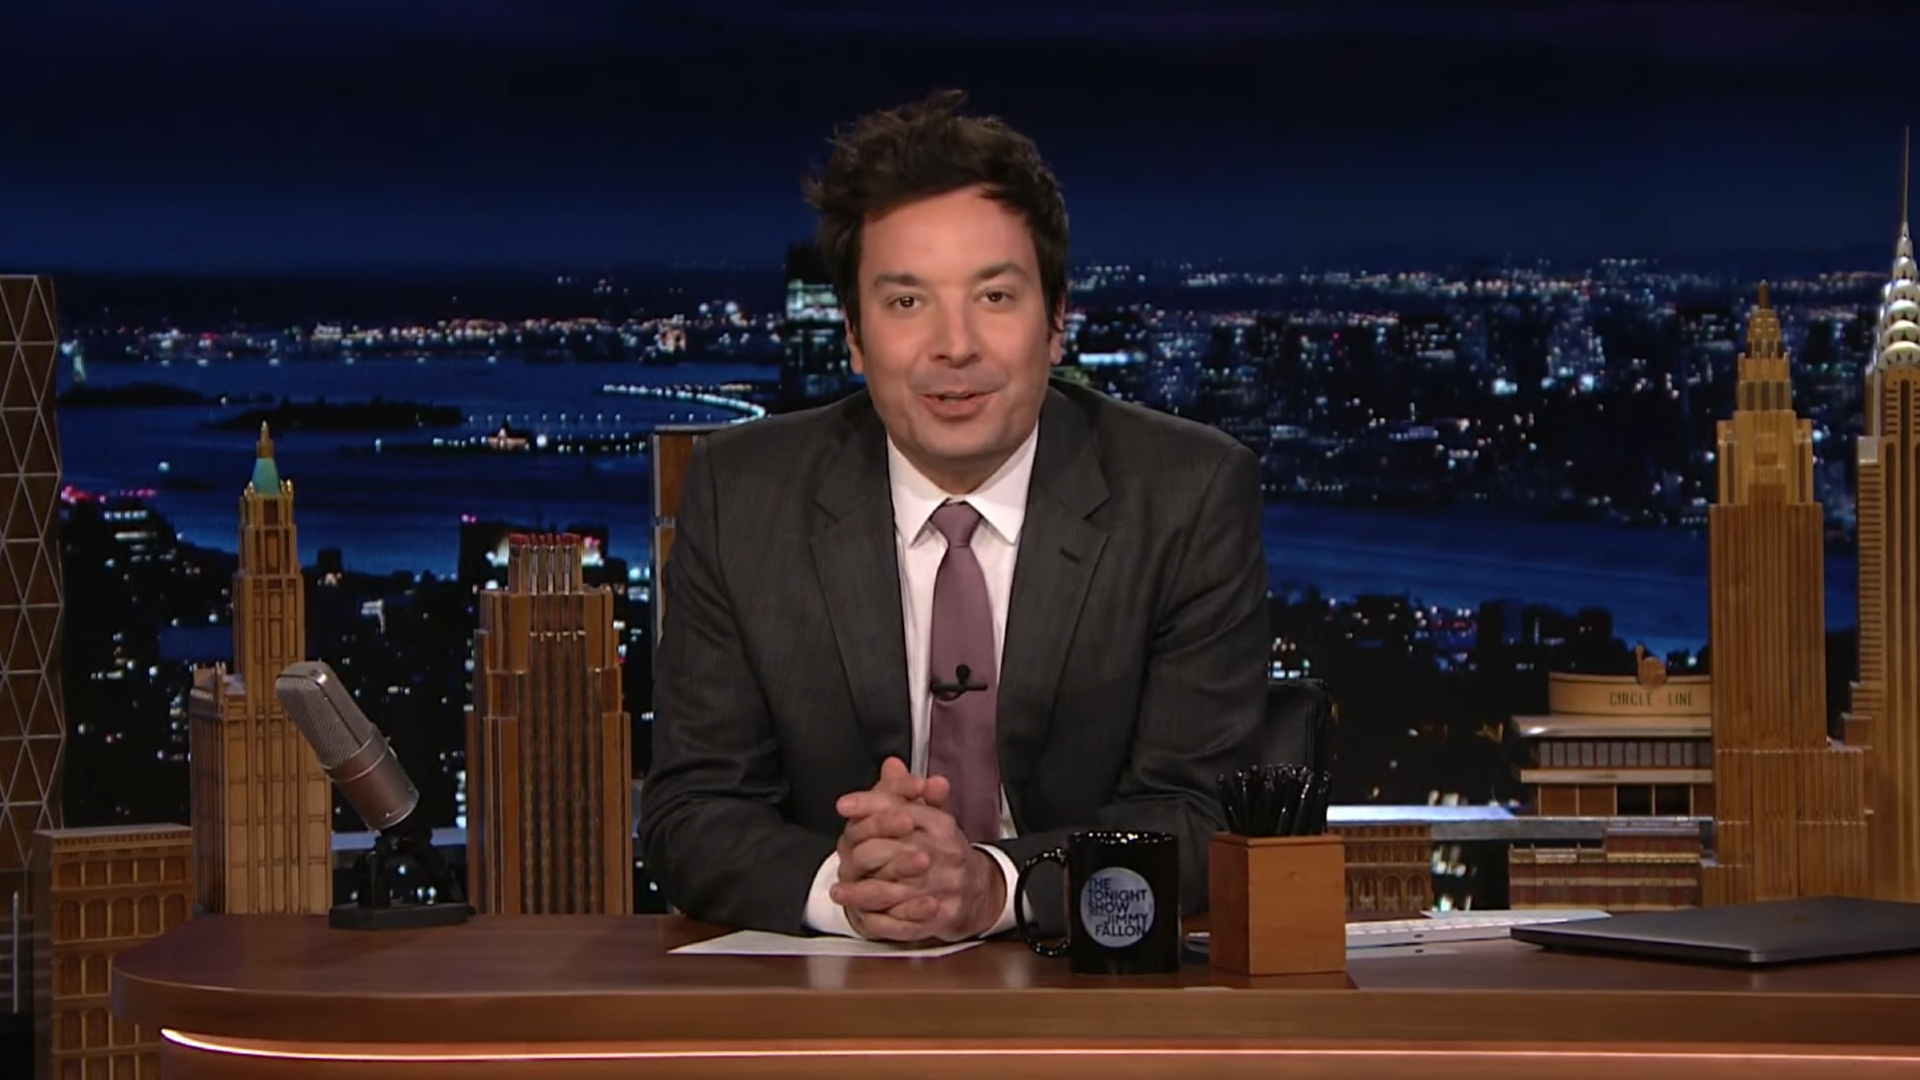 Yes, Jimmy Fallon is streaming Among Us today